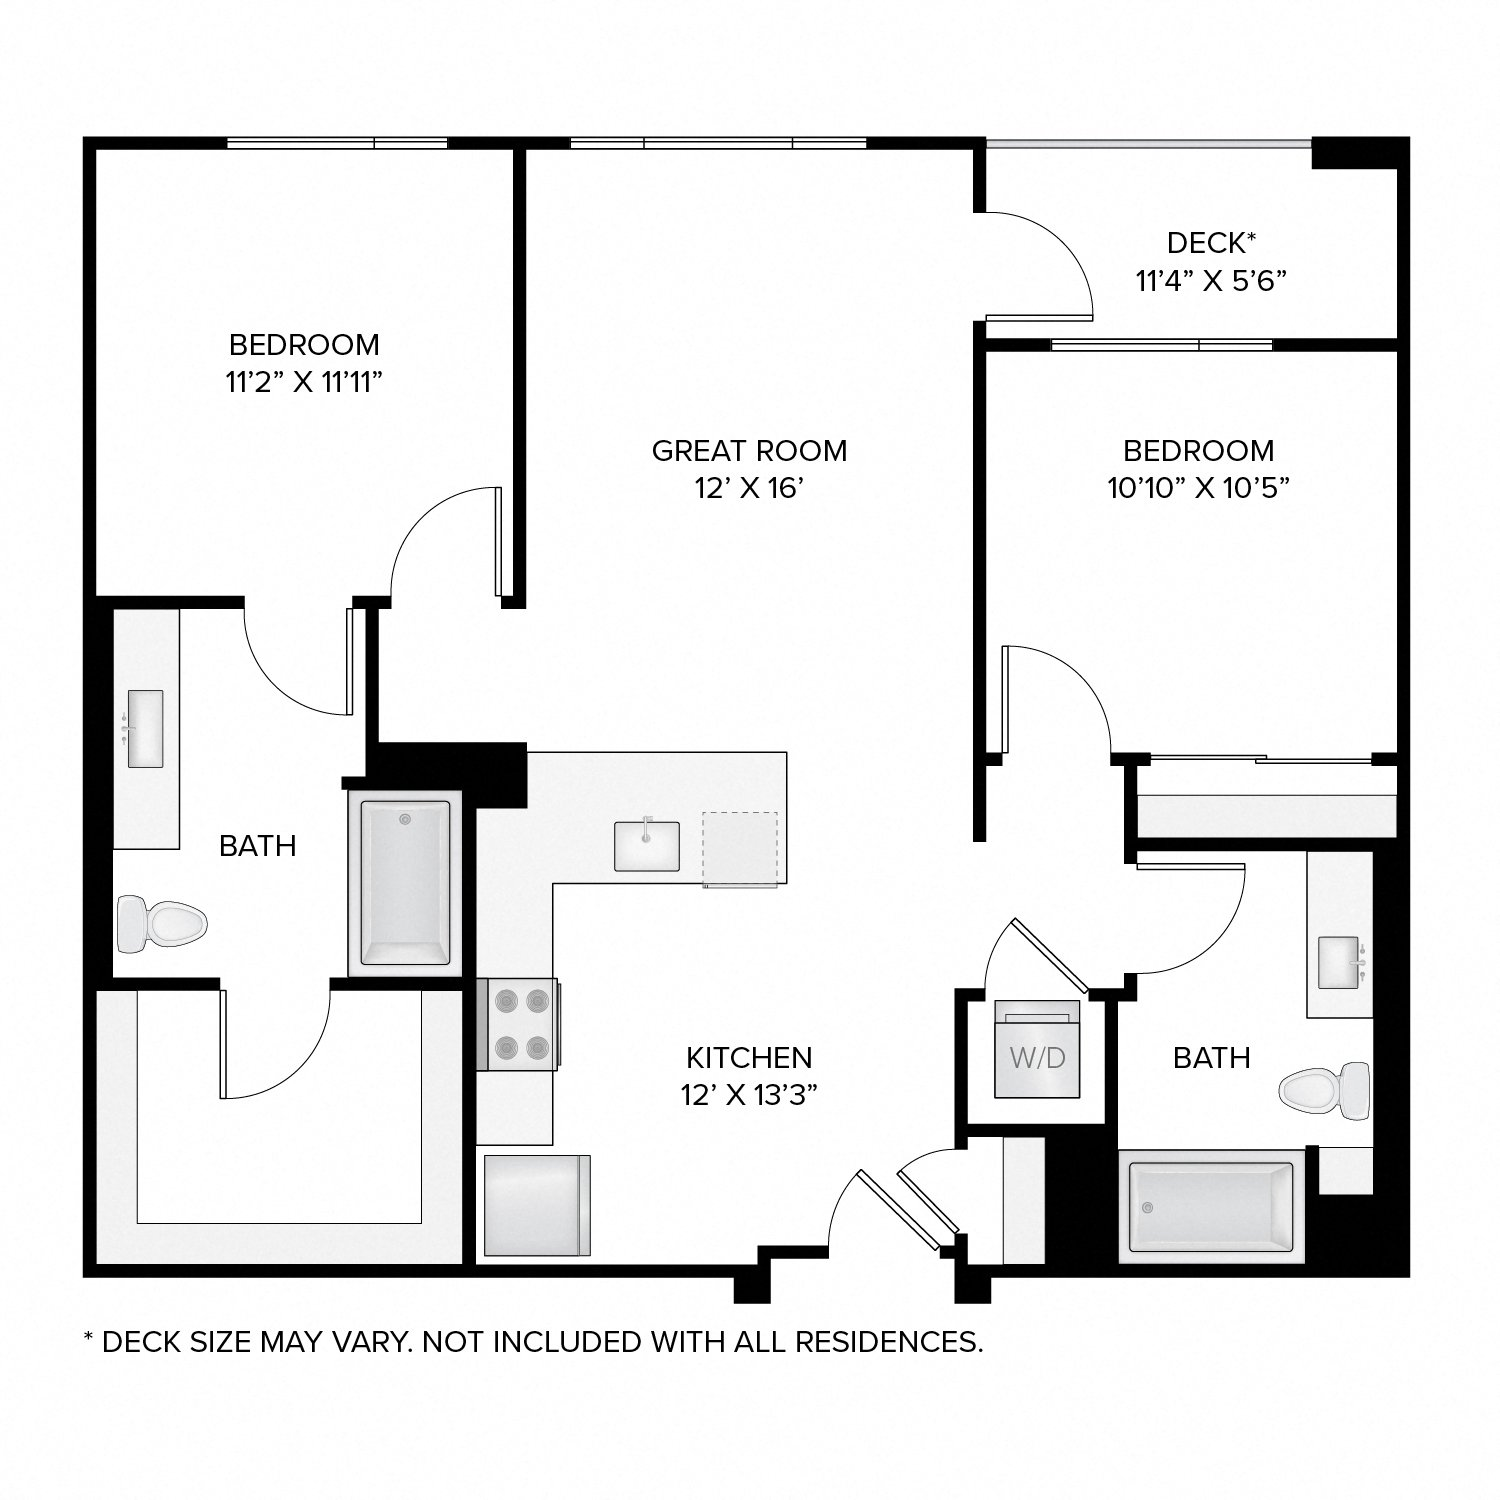 Diagram of the Madison floor plan. Two bedrooms, two bathrooms, an open kitchen and living area, a washer dryer, and in select residences, a deck.